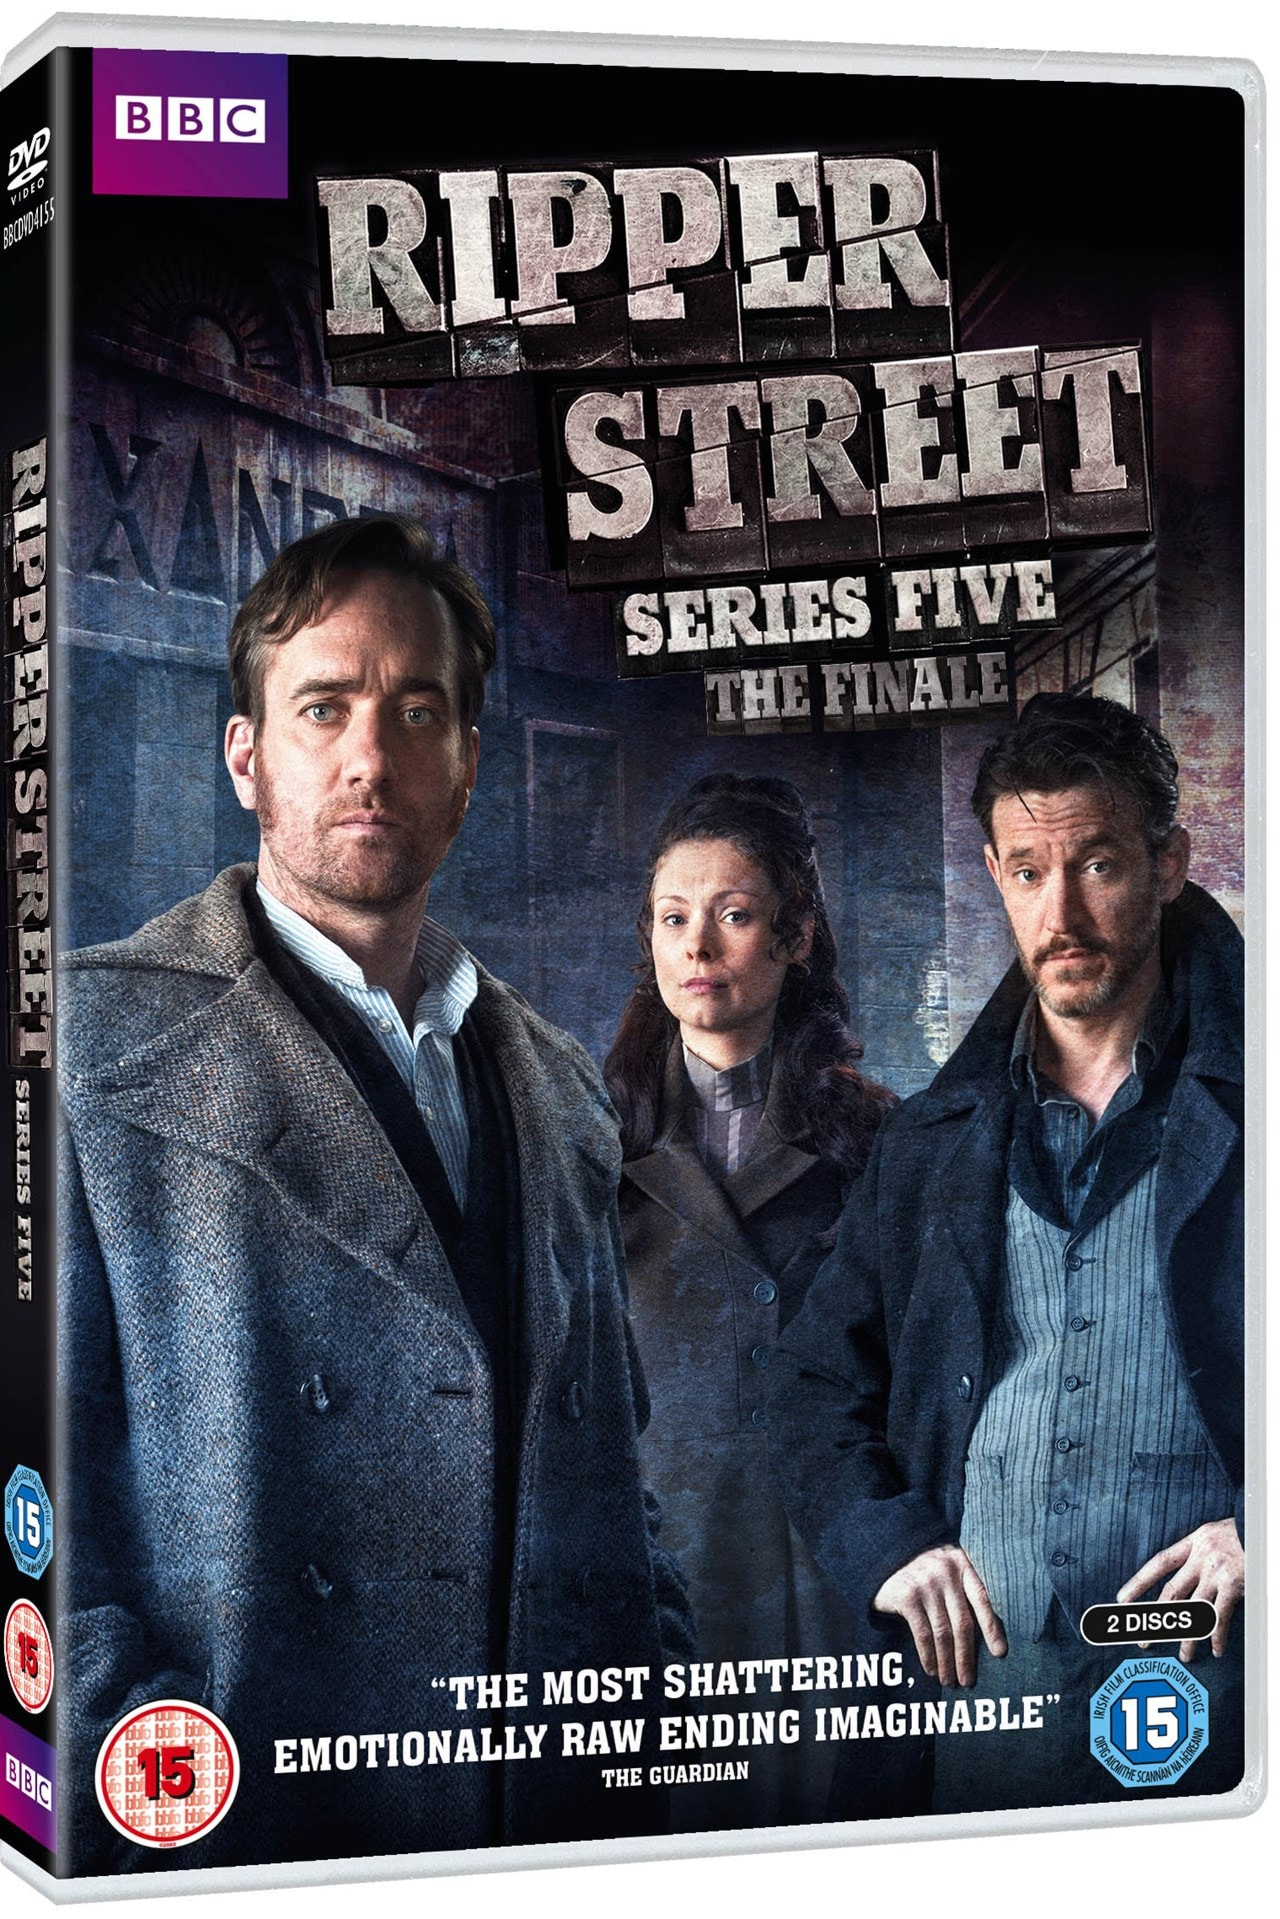 Ripper Street: Series Five - The Finale - 2